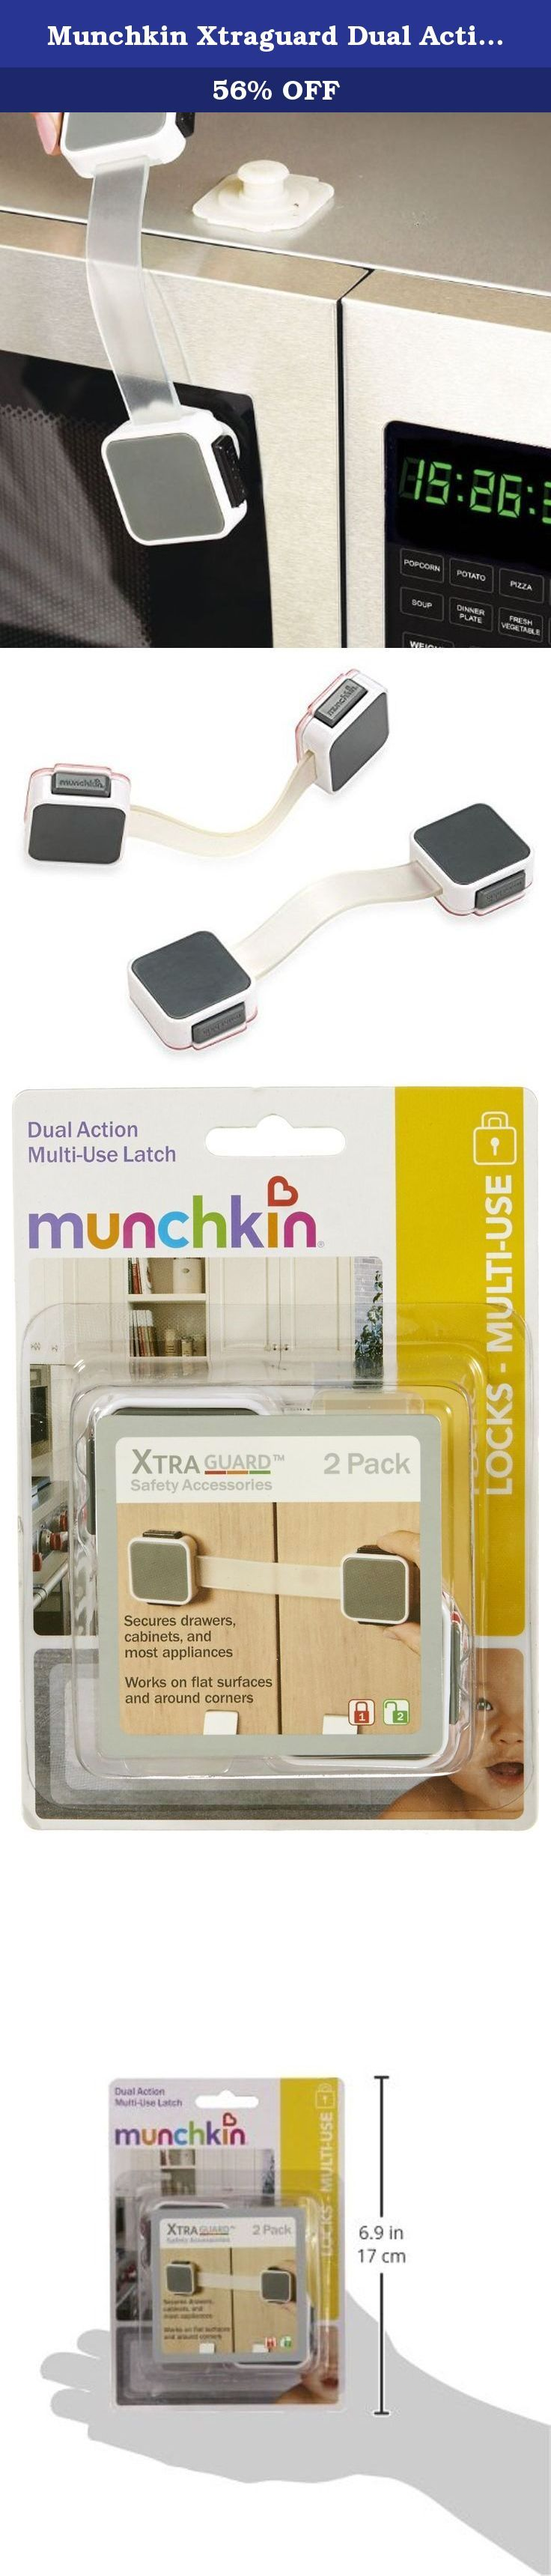 Munchkin Xtraguard Dual Action Multi Use Latches, 2 Count. Secure cabinets, drawers, appliances, toilet seats and more with the Munchkin XTRAGUARD dual action multi-use latch. This handy 2 pack features a dual button operation to release, making it hard for children to open but easy for an adult. Simply release and rotate when not in use and push back to fasten. The flexible strap allows for latching around corners. Installation is quick and simple and the included adhesive removes easily...